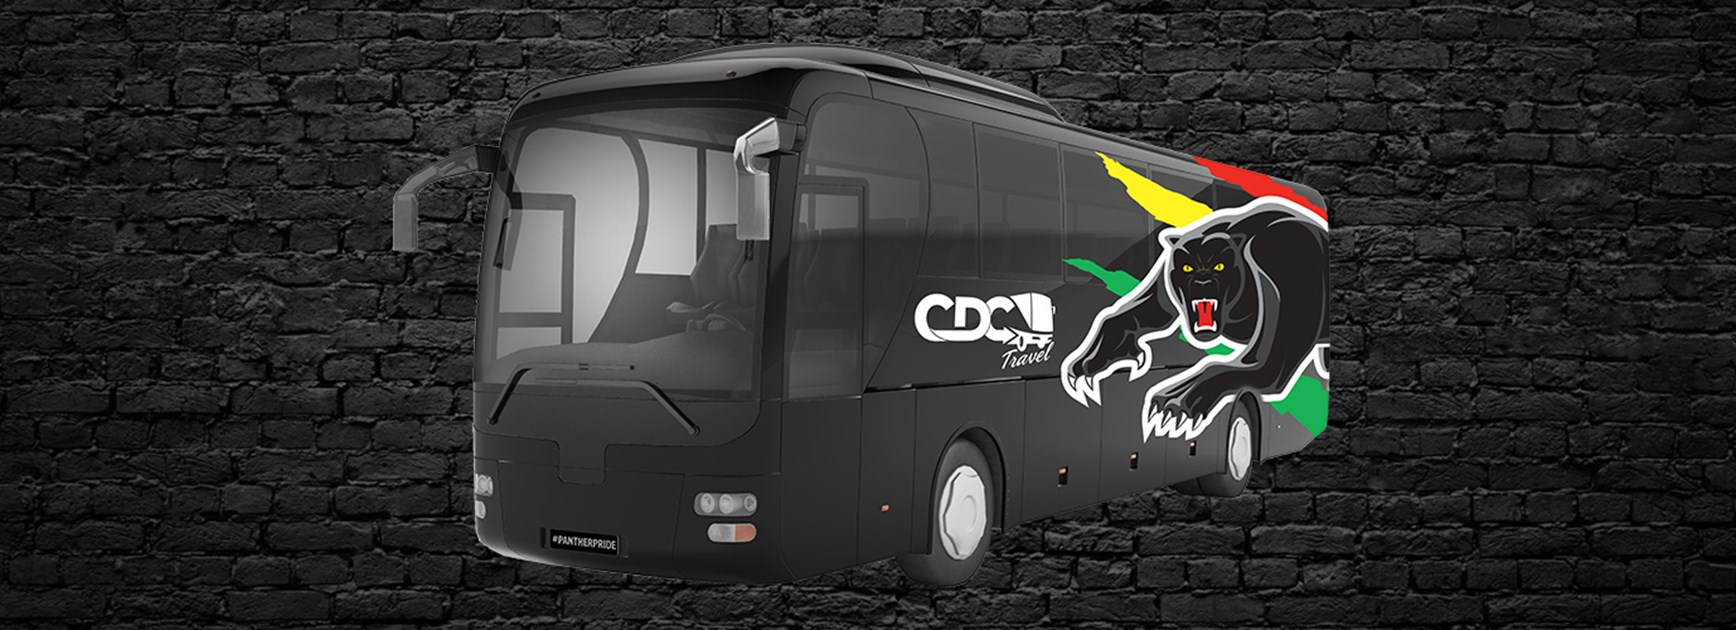 CDC Travel Panther Bus: Round 3